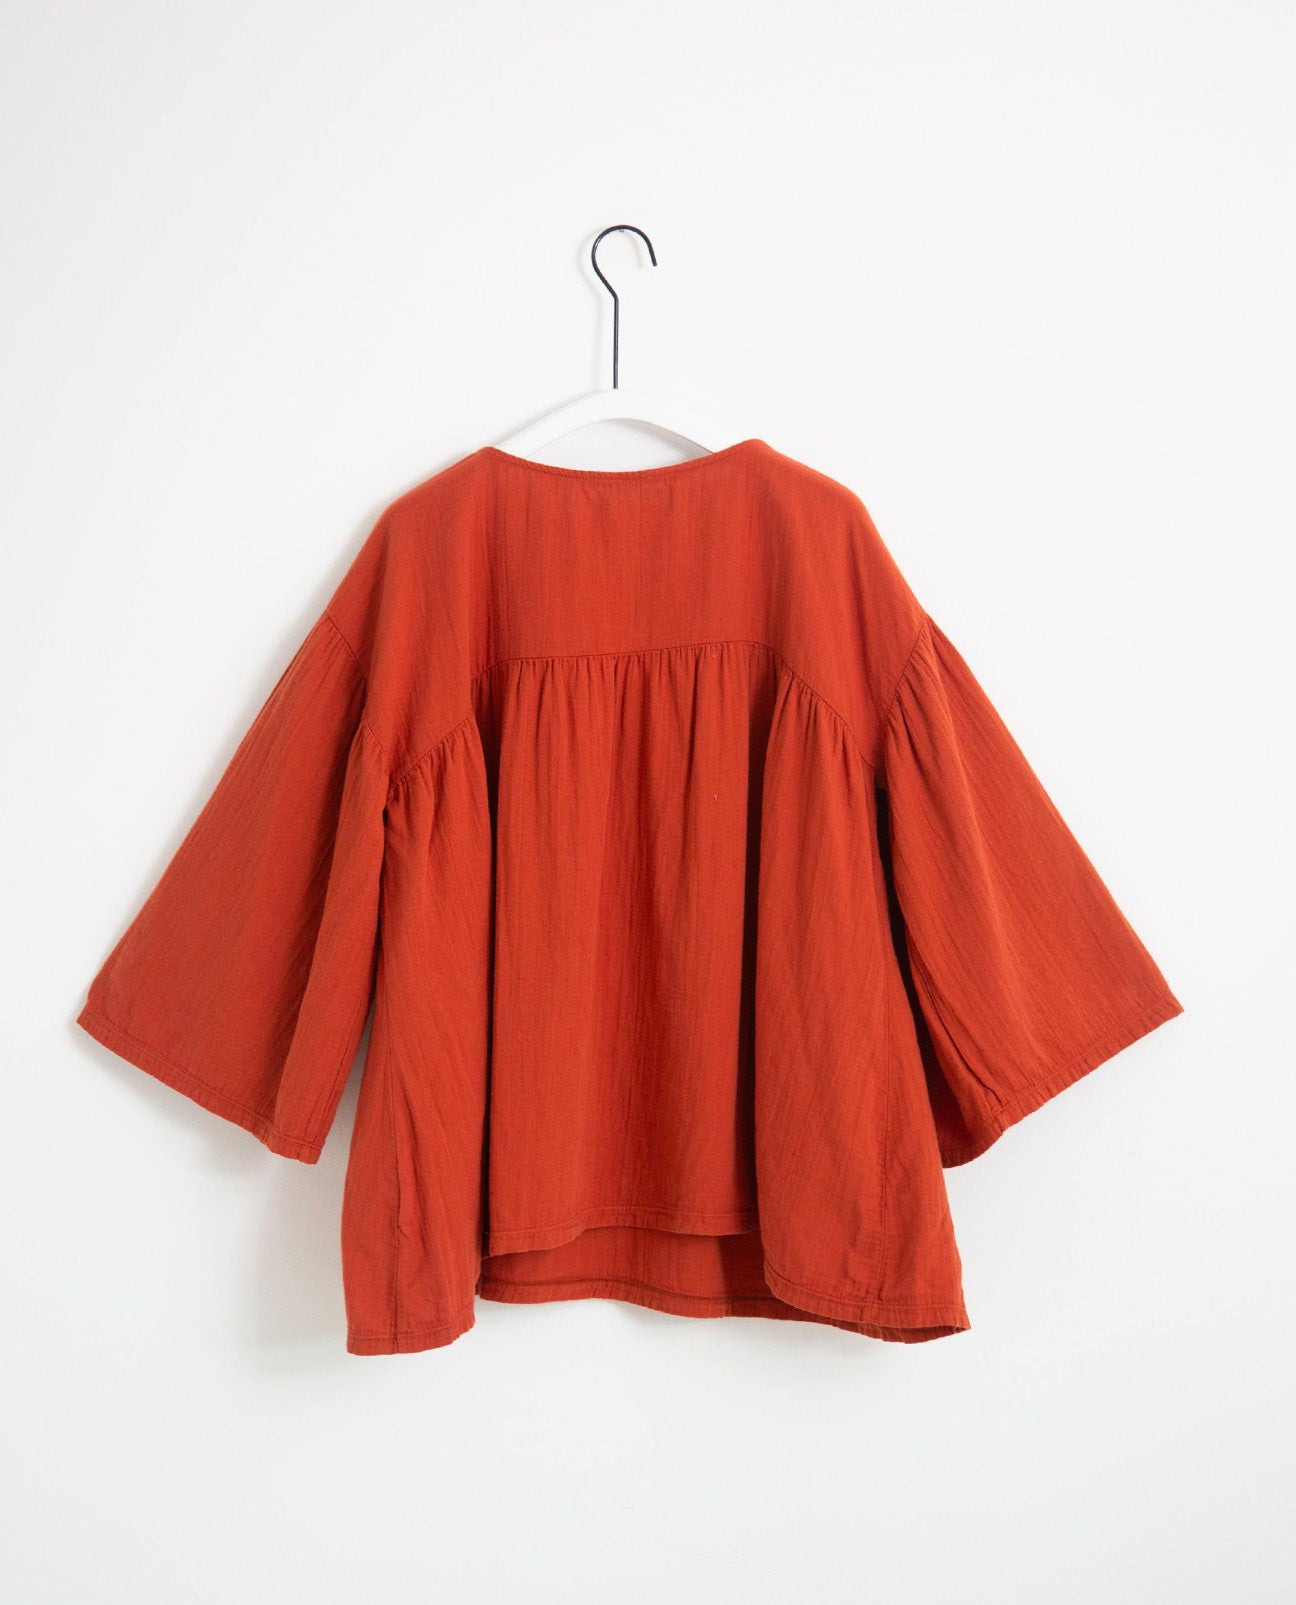 Carlotte Organic Cotton Top In Cinnamon